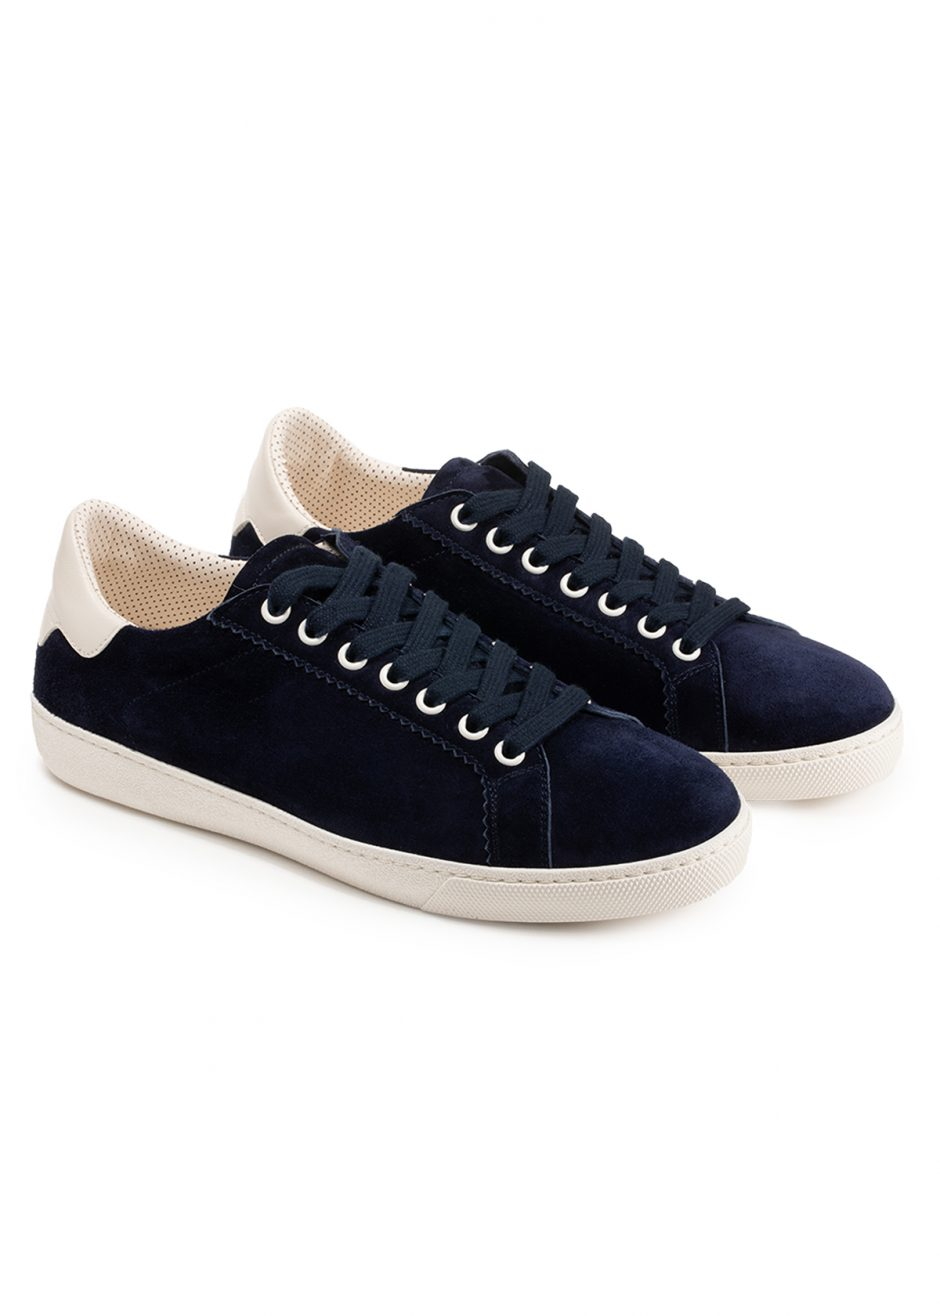 Jackie – Sneakers blue cachemire-effect suede leather with white profile